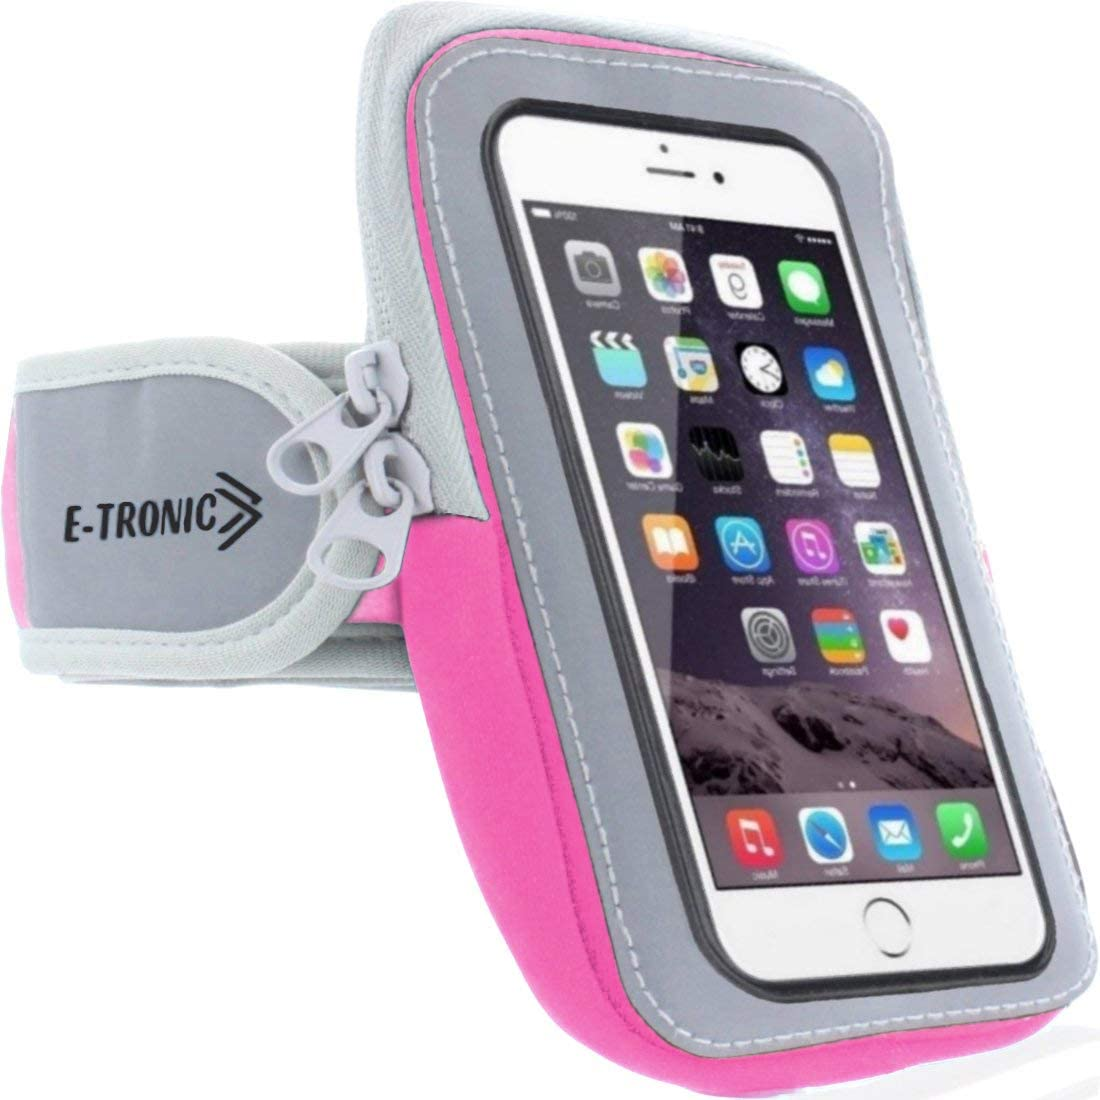 Universal Phone Holder for Running: Armband Sleeve Workout Gear Arm Pouch Case & Bag Compatible Apple iPhone 7 7S 8 8S Plus X XS XR MAX 11 & Galaxy Note 7 8 9 - All Plus Sized Phones Up to 6.4 Inches